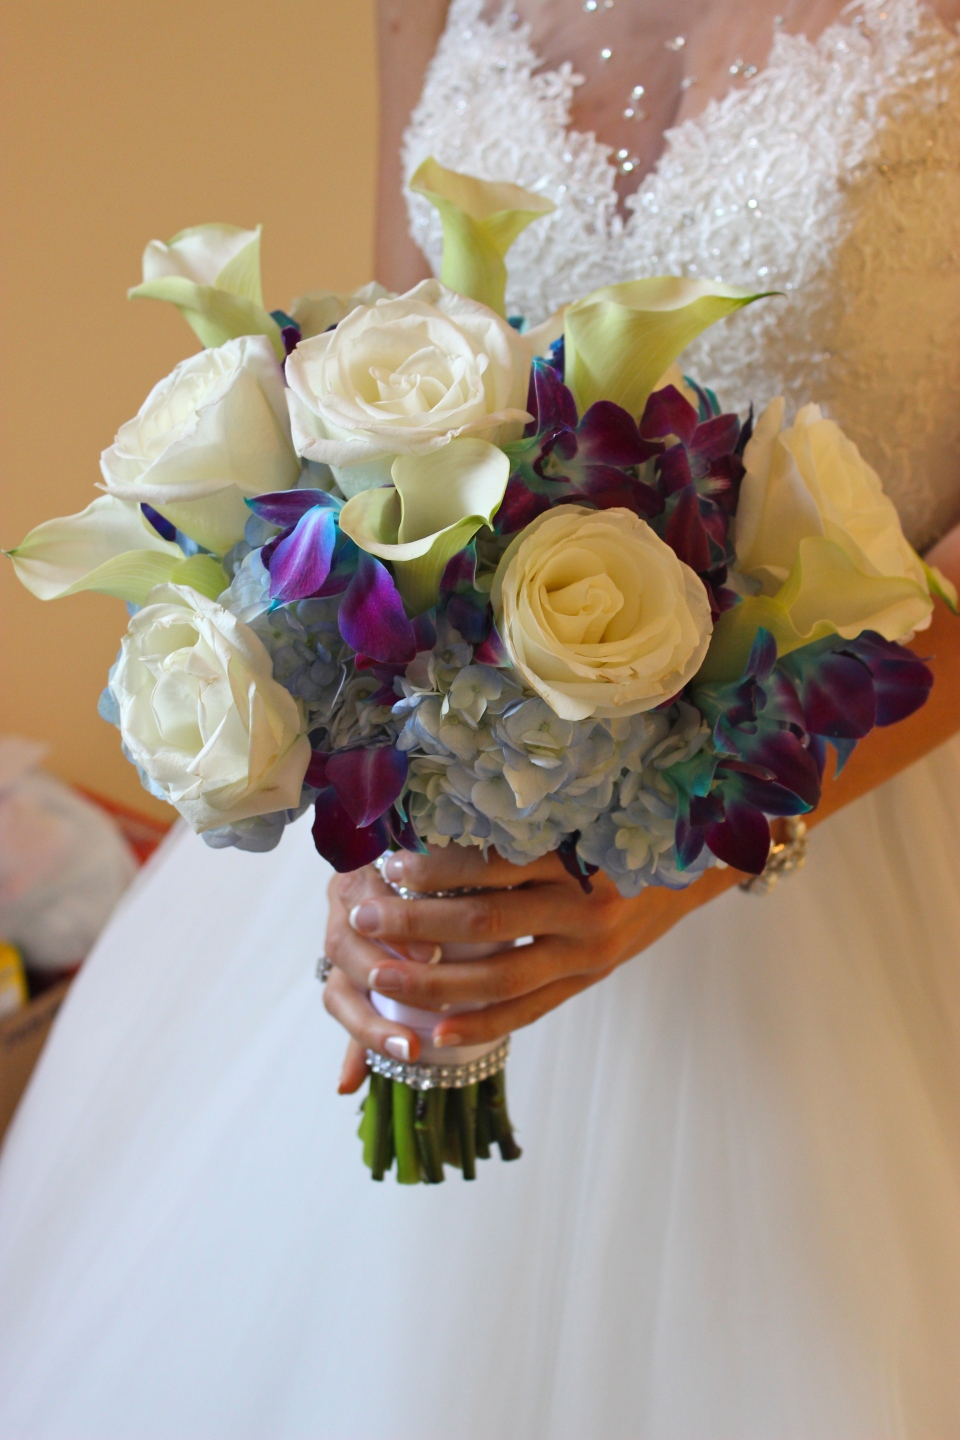 Blue and White Bridal Bouquet with Orchids, Roses and Calla Lilies